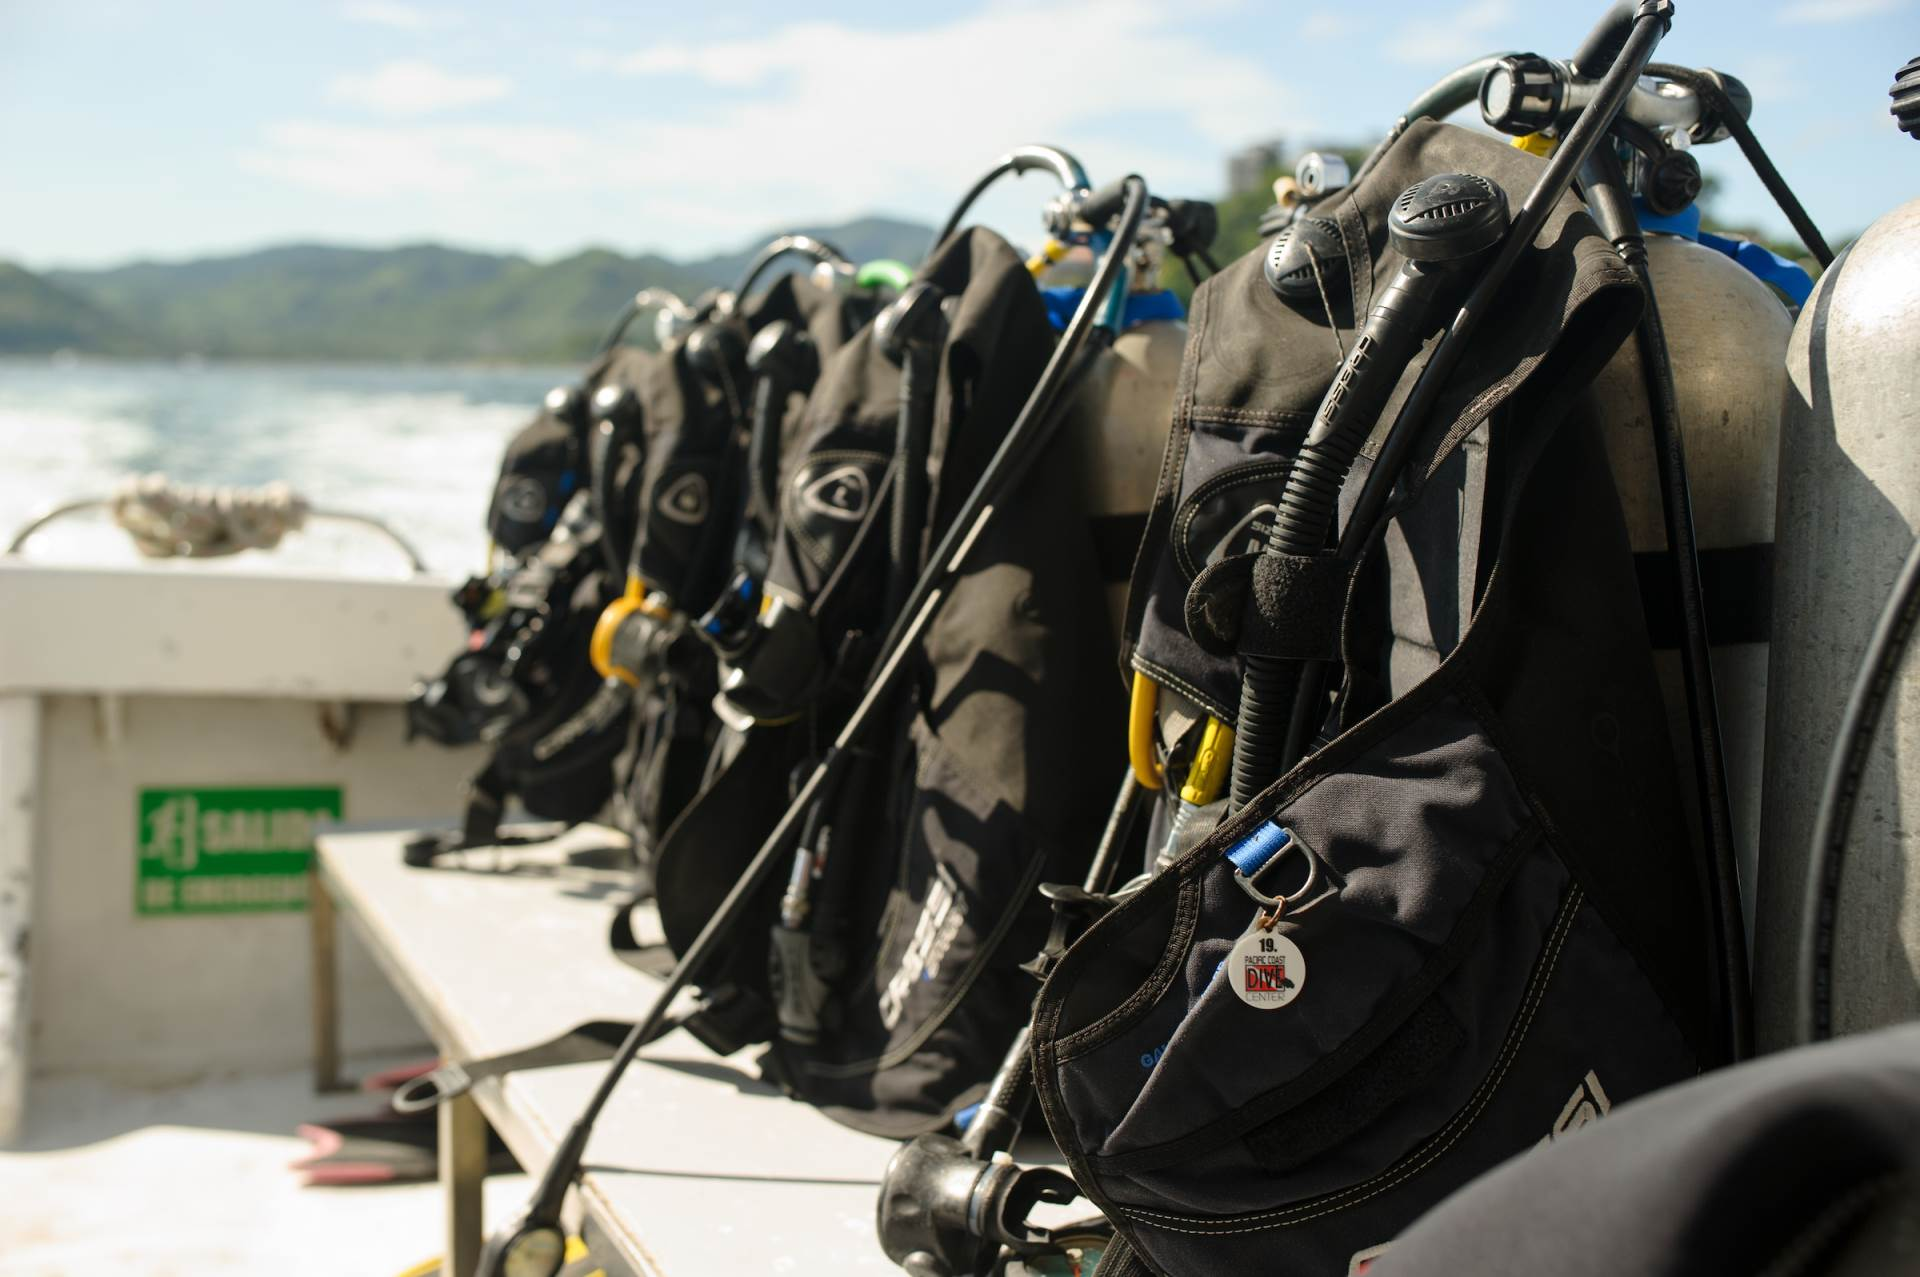 We can arrange equipment for 19 divers and 12 snorkellers. But we split groups in a maximun ratio of 4 divers per lider.